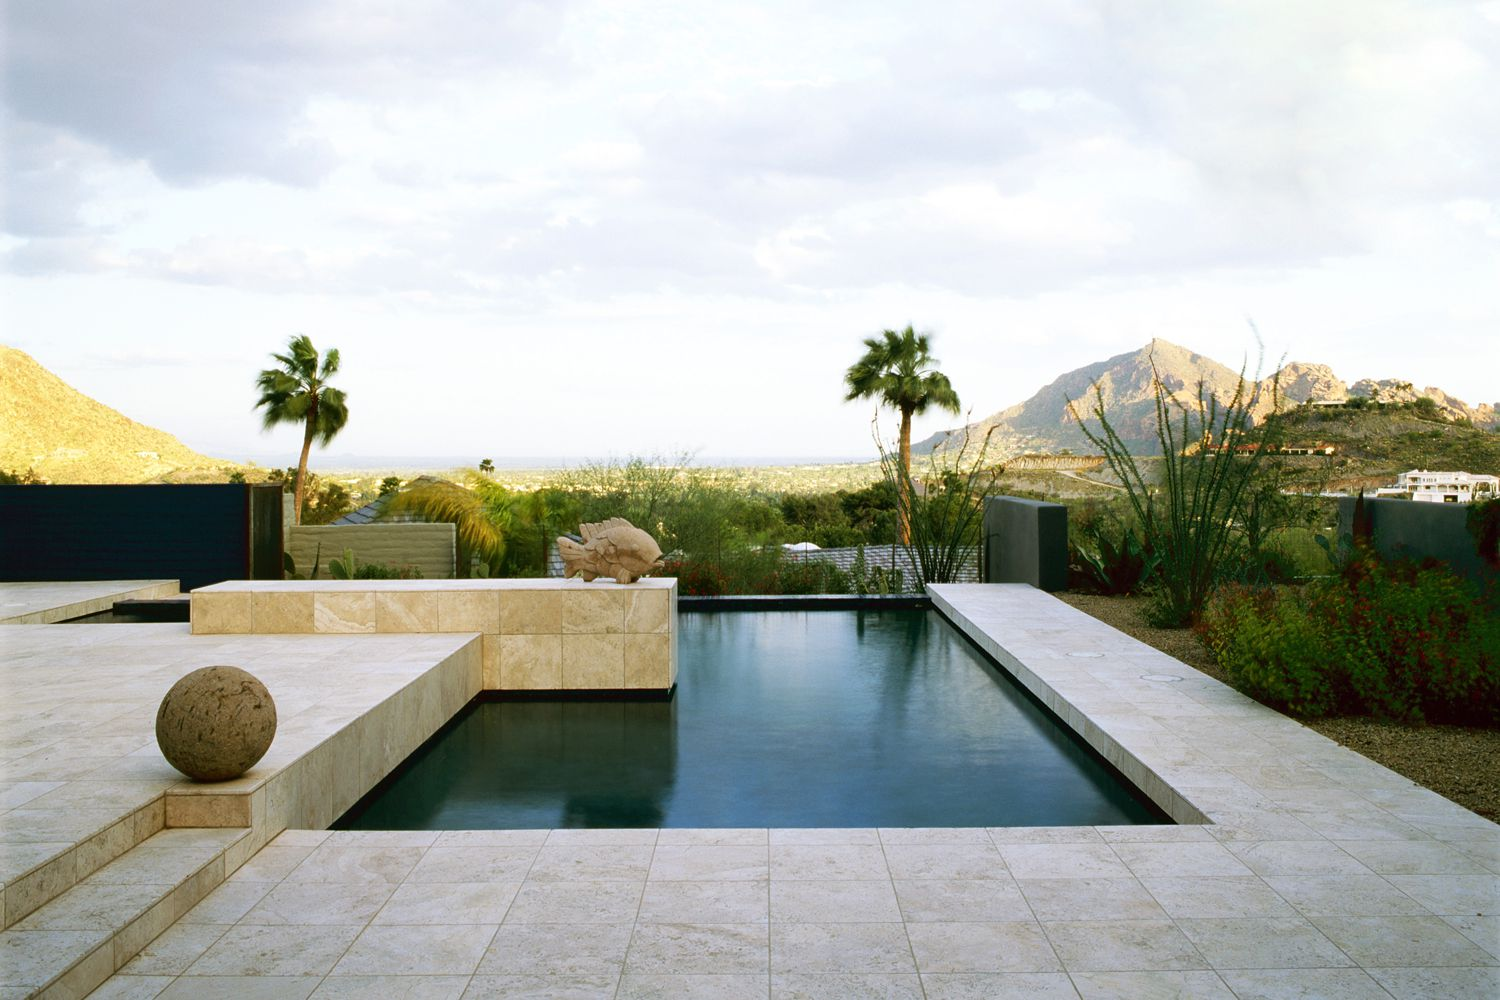 Pool Remodel Phoenix Concept Is It Safe To Let My Dog Swim In The Pool